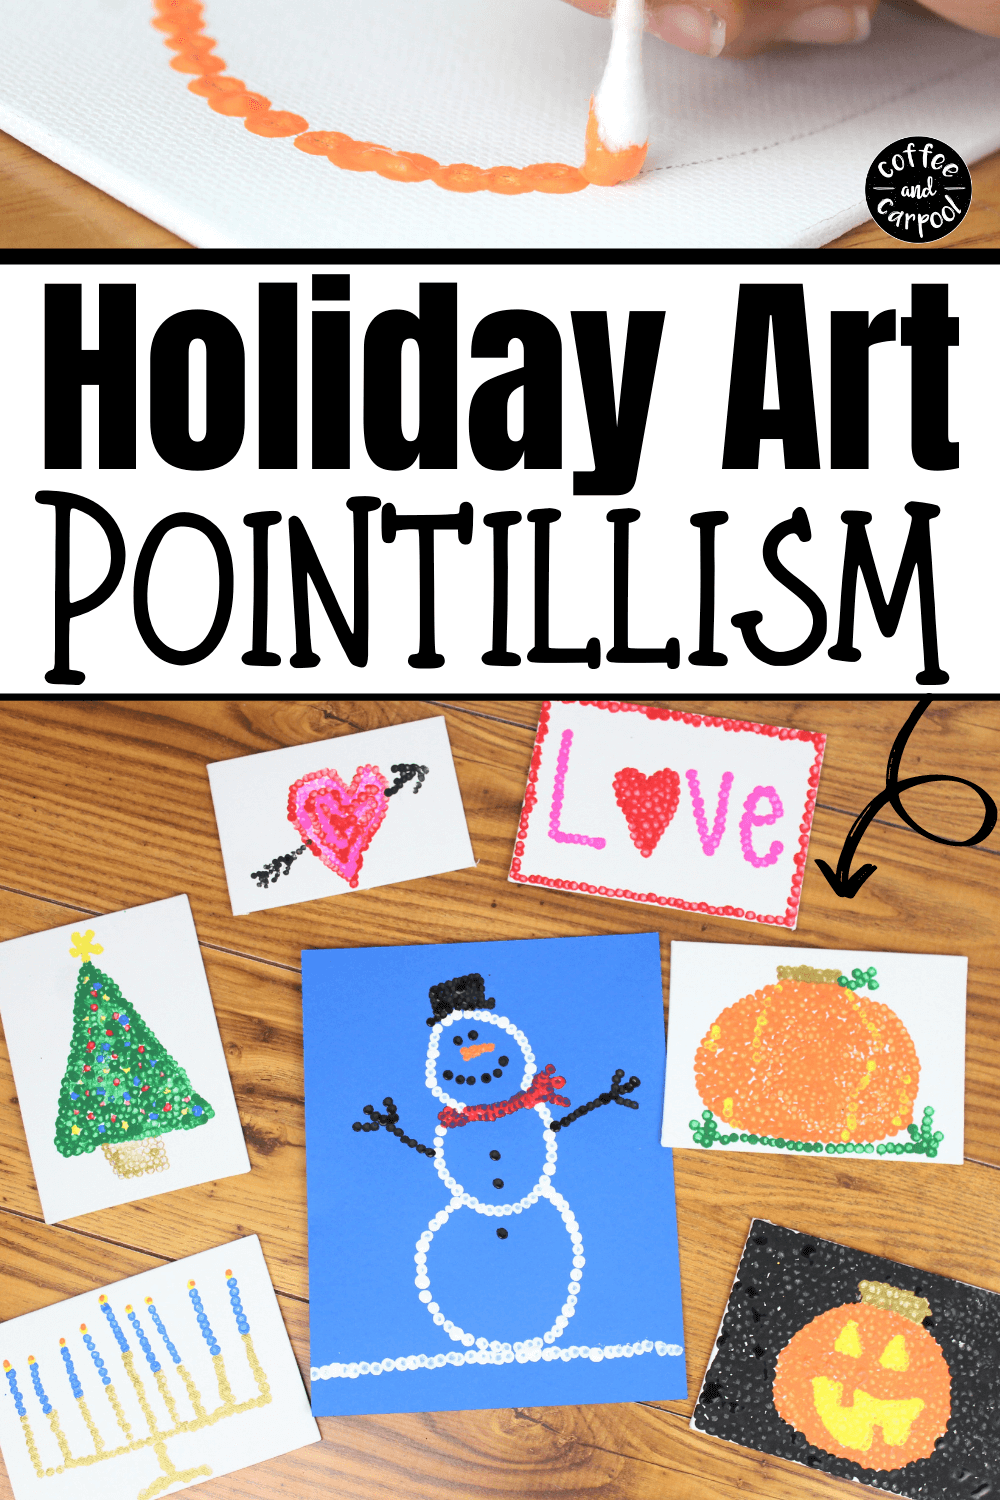 These holiday art with pointillism projects are perfect anytime of the year to do with kids at home or kids in the classroom. #artprojects #kidartprojects #artsandcrafts #holidaycrafts #holidaycraftsforkids #pointillismart #artteacher